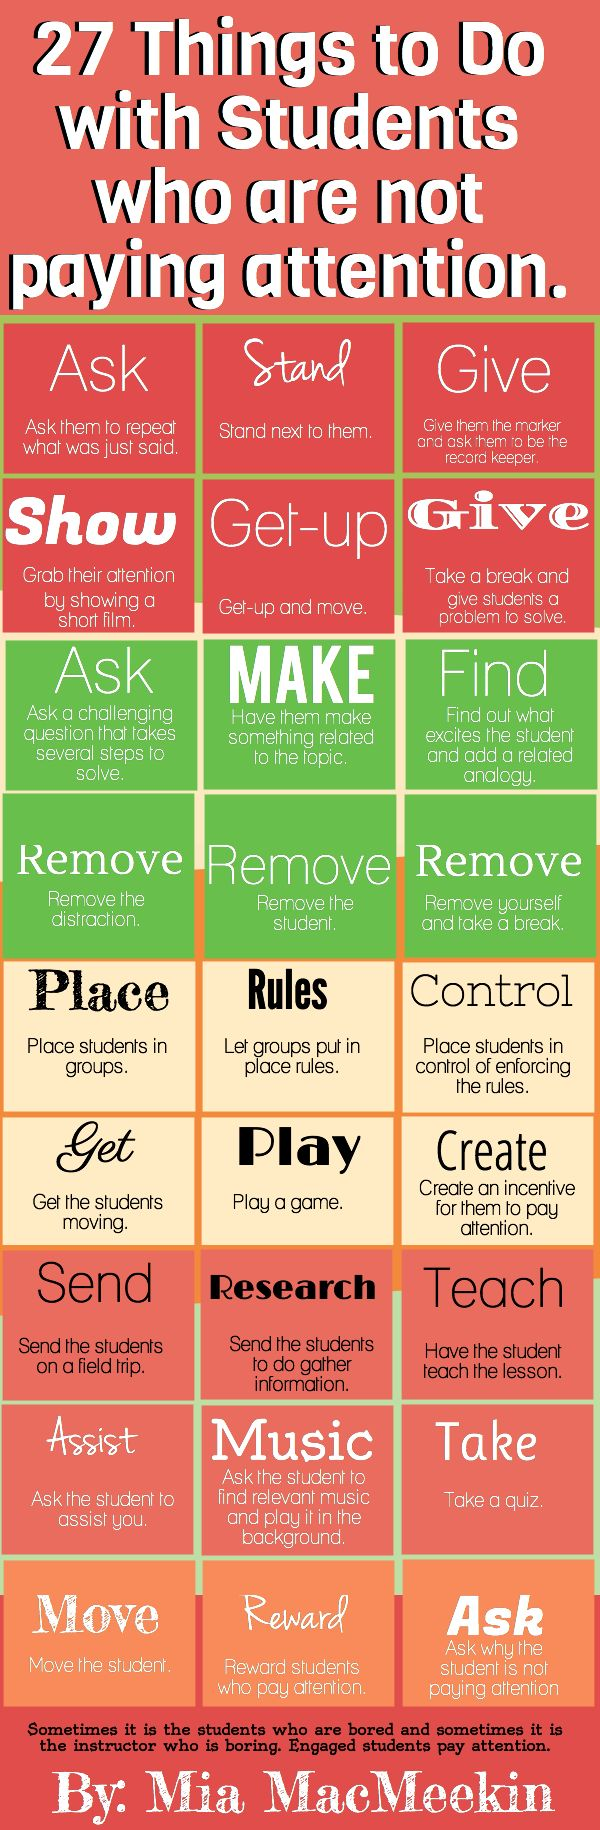 27 Ways To Make Sure Students Pay Attention In Class. Or second language learners.